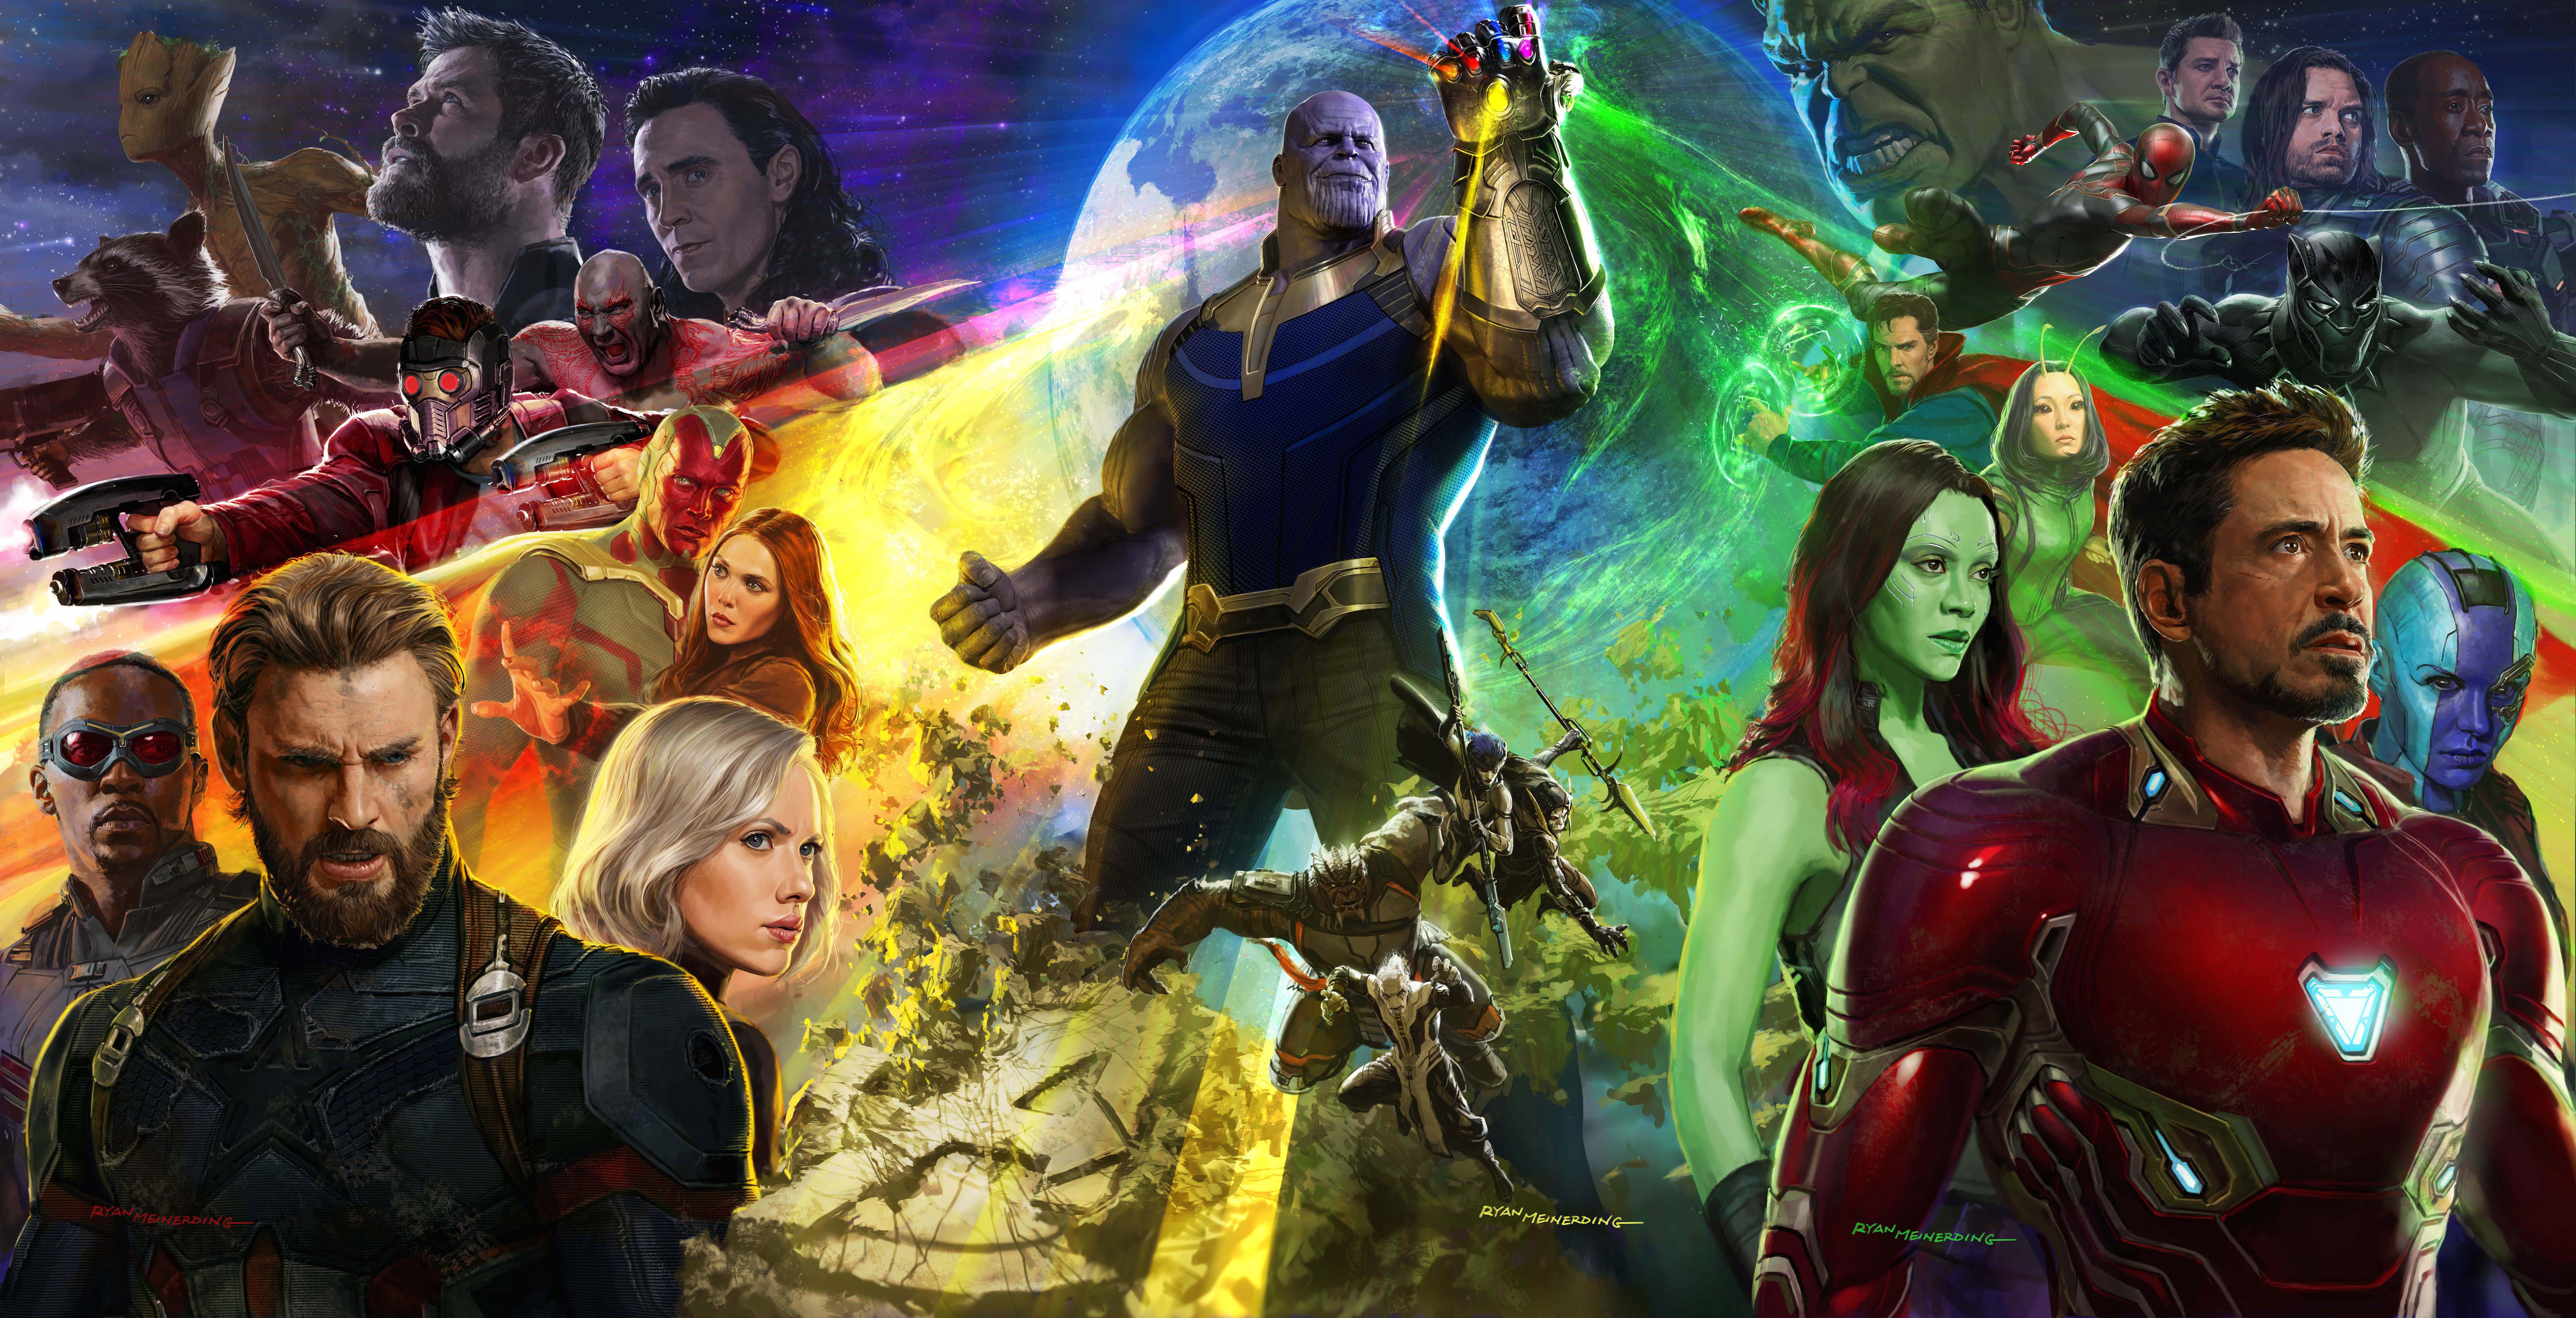 General 6000x3071 Avengers: Infinity war movies Marvel Cinematic Universe Thanos Iron Man Captain America Gamora  Black Widow Falcon Groot Thor Loki Drax the Destroyer Scarlet Witch Rocket Raccoon Nebula (Marvel) Mantis (Marvel) Doctor Strange Vision Star Lord Black Panther Spider-Man Bucky Barnes War Machine  Hawkeye Hulk artwork